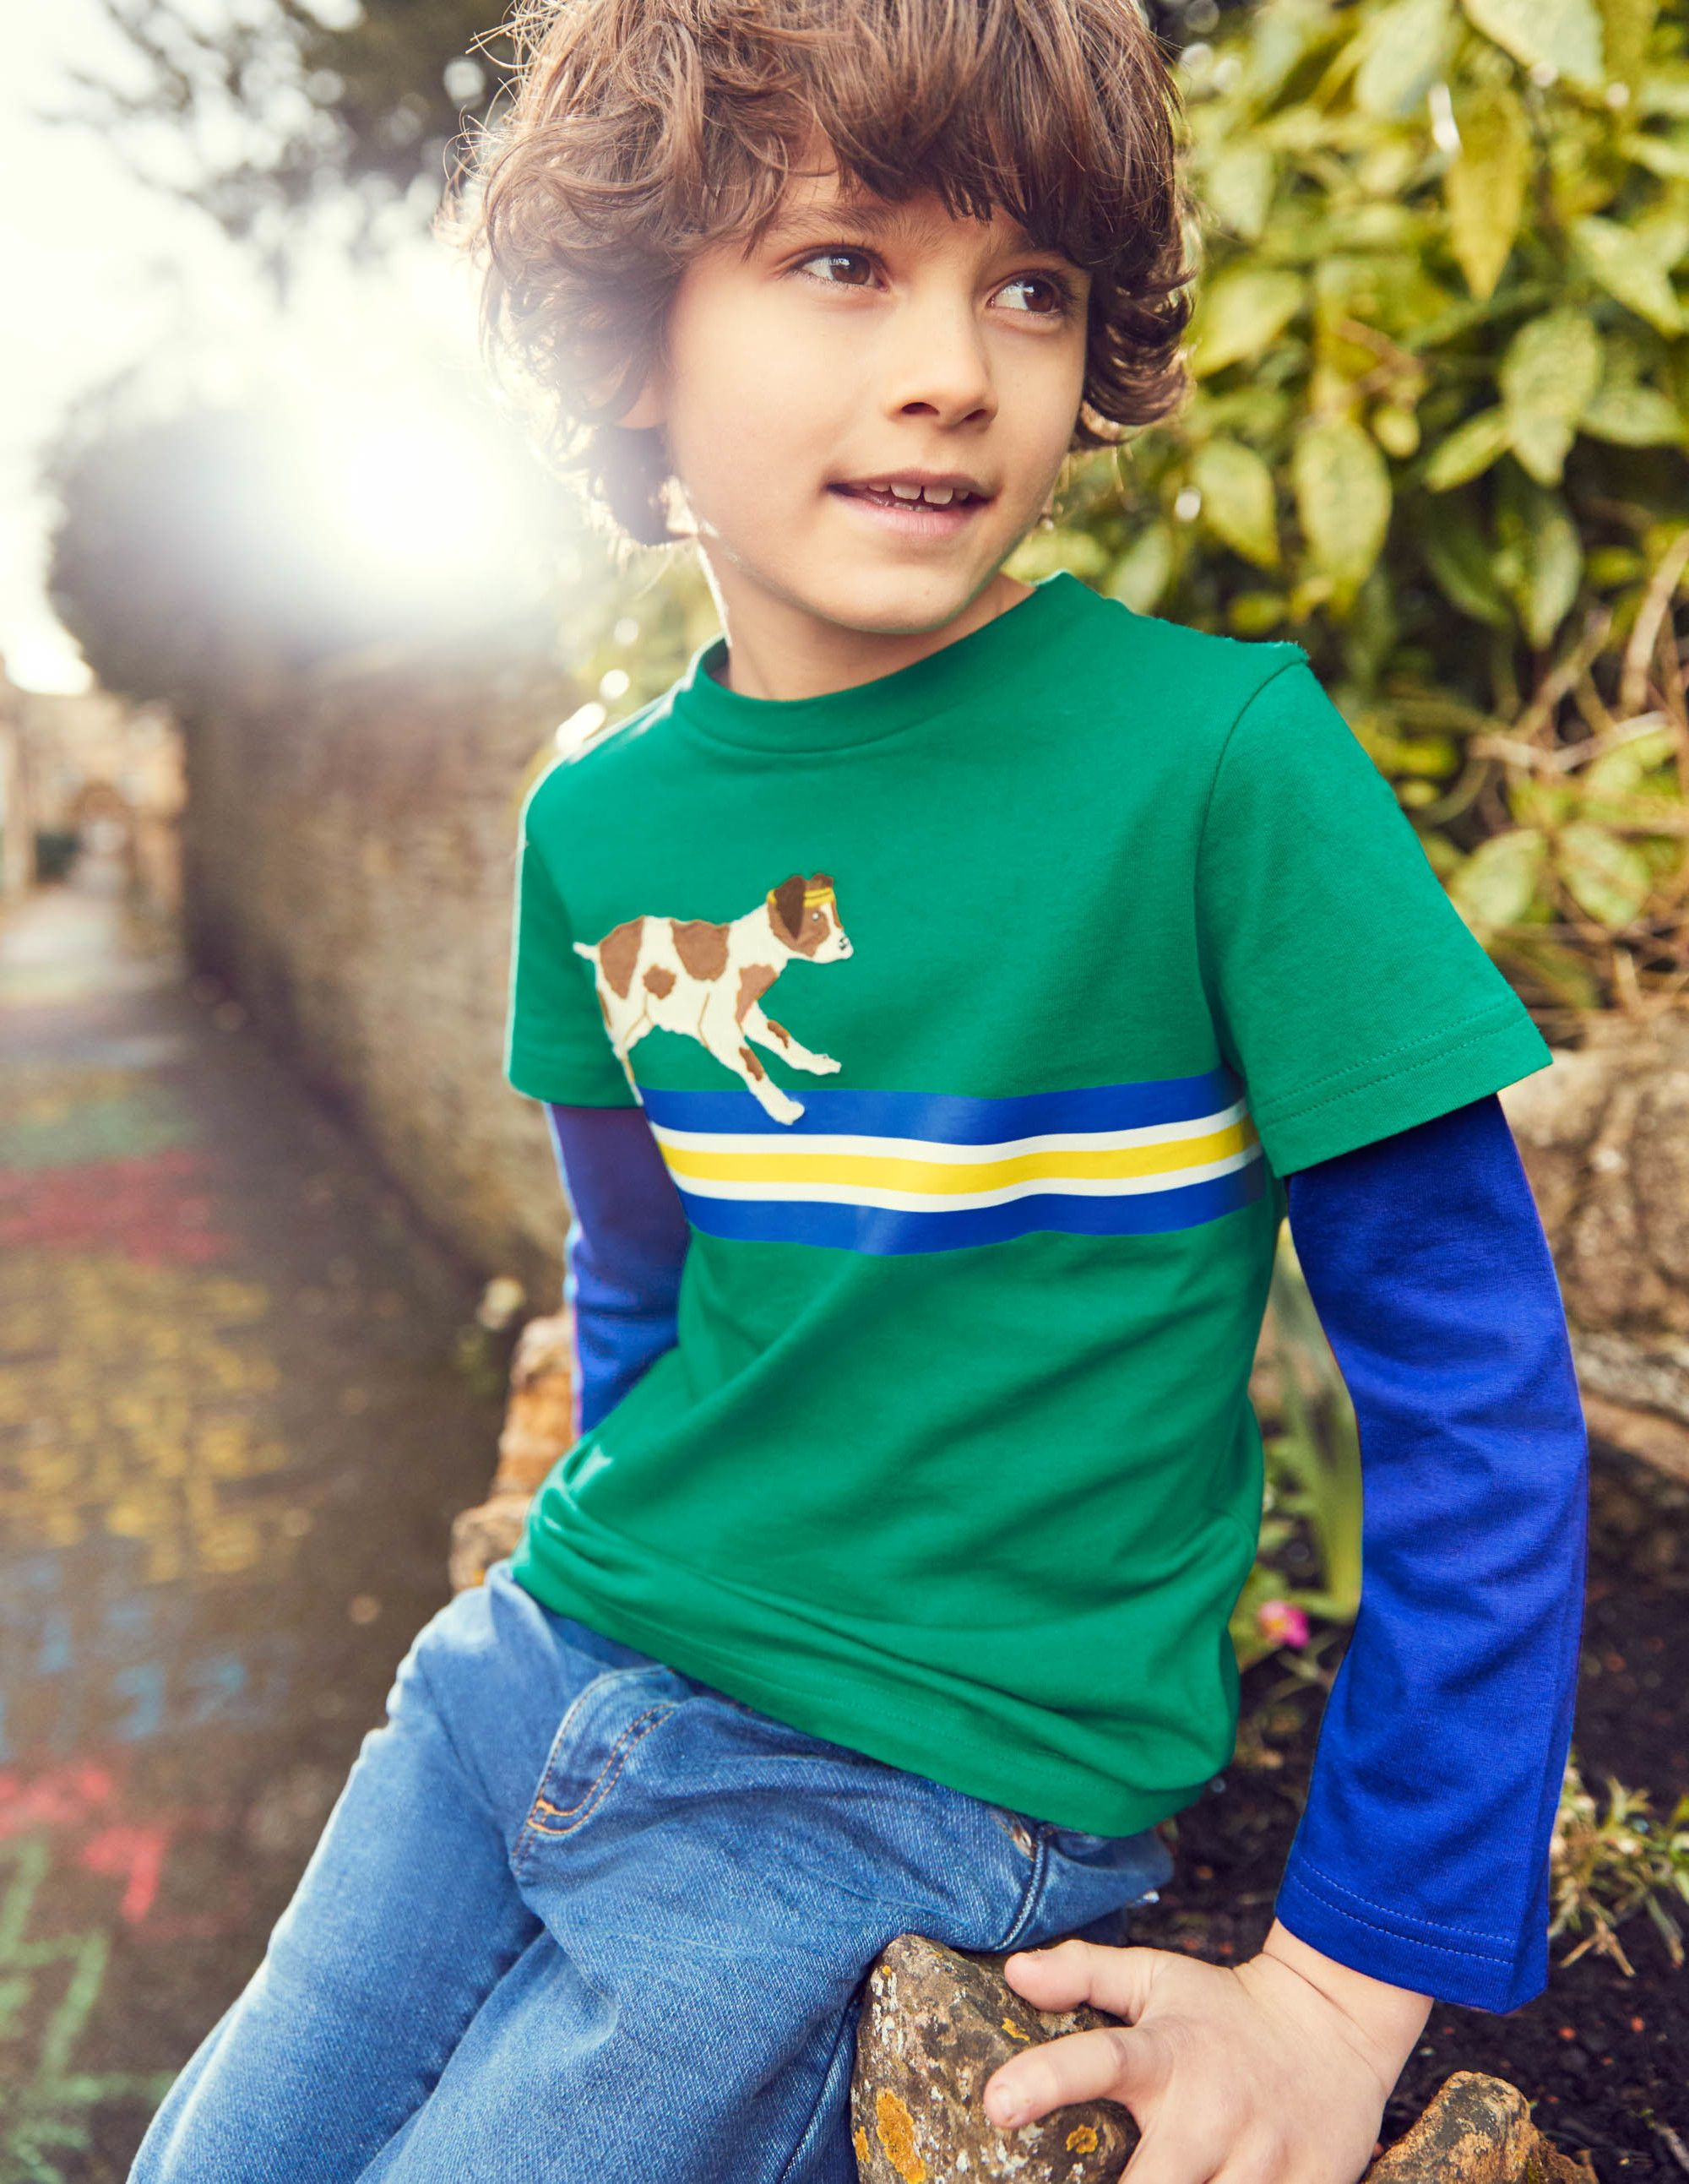 Dondup (With images) | Boy outfits, Kids fashion, Boy models